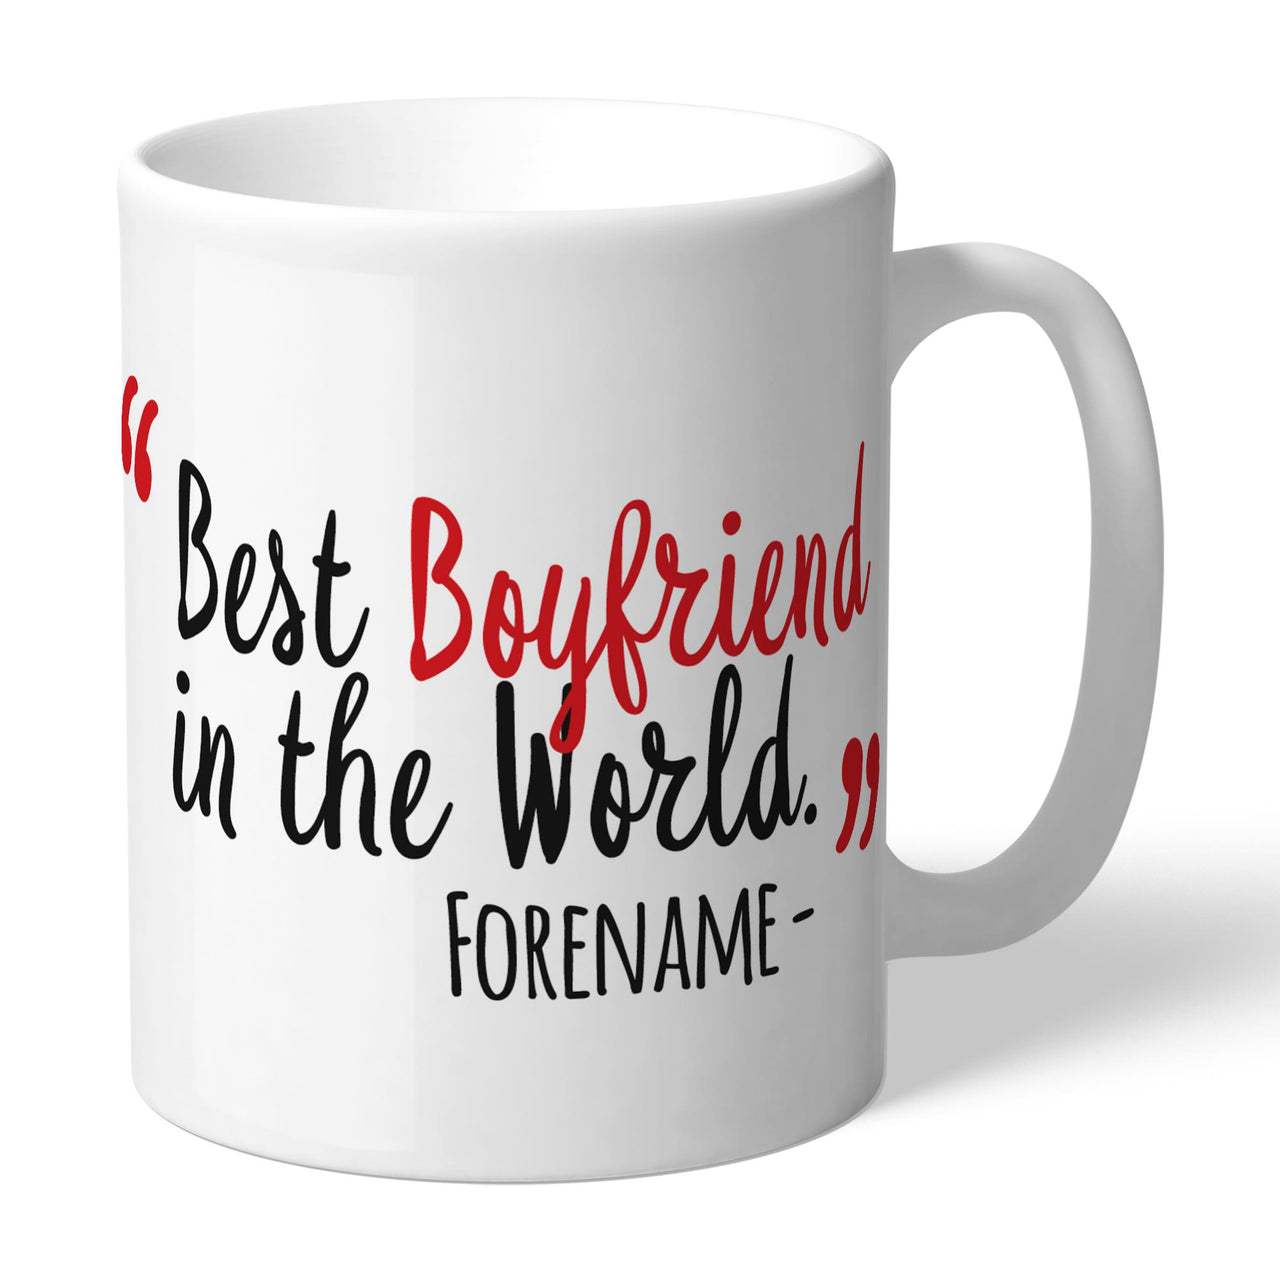 Southampton Best Boyfriend In The World Mugs, Gifts